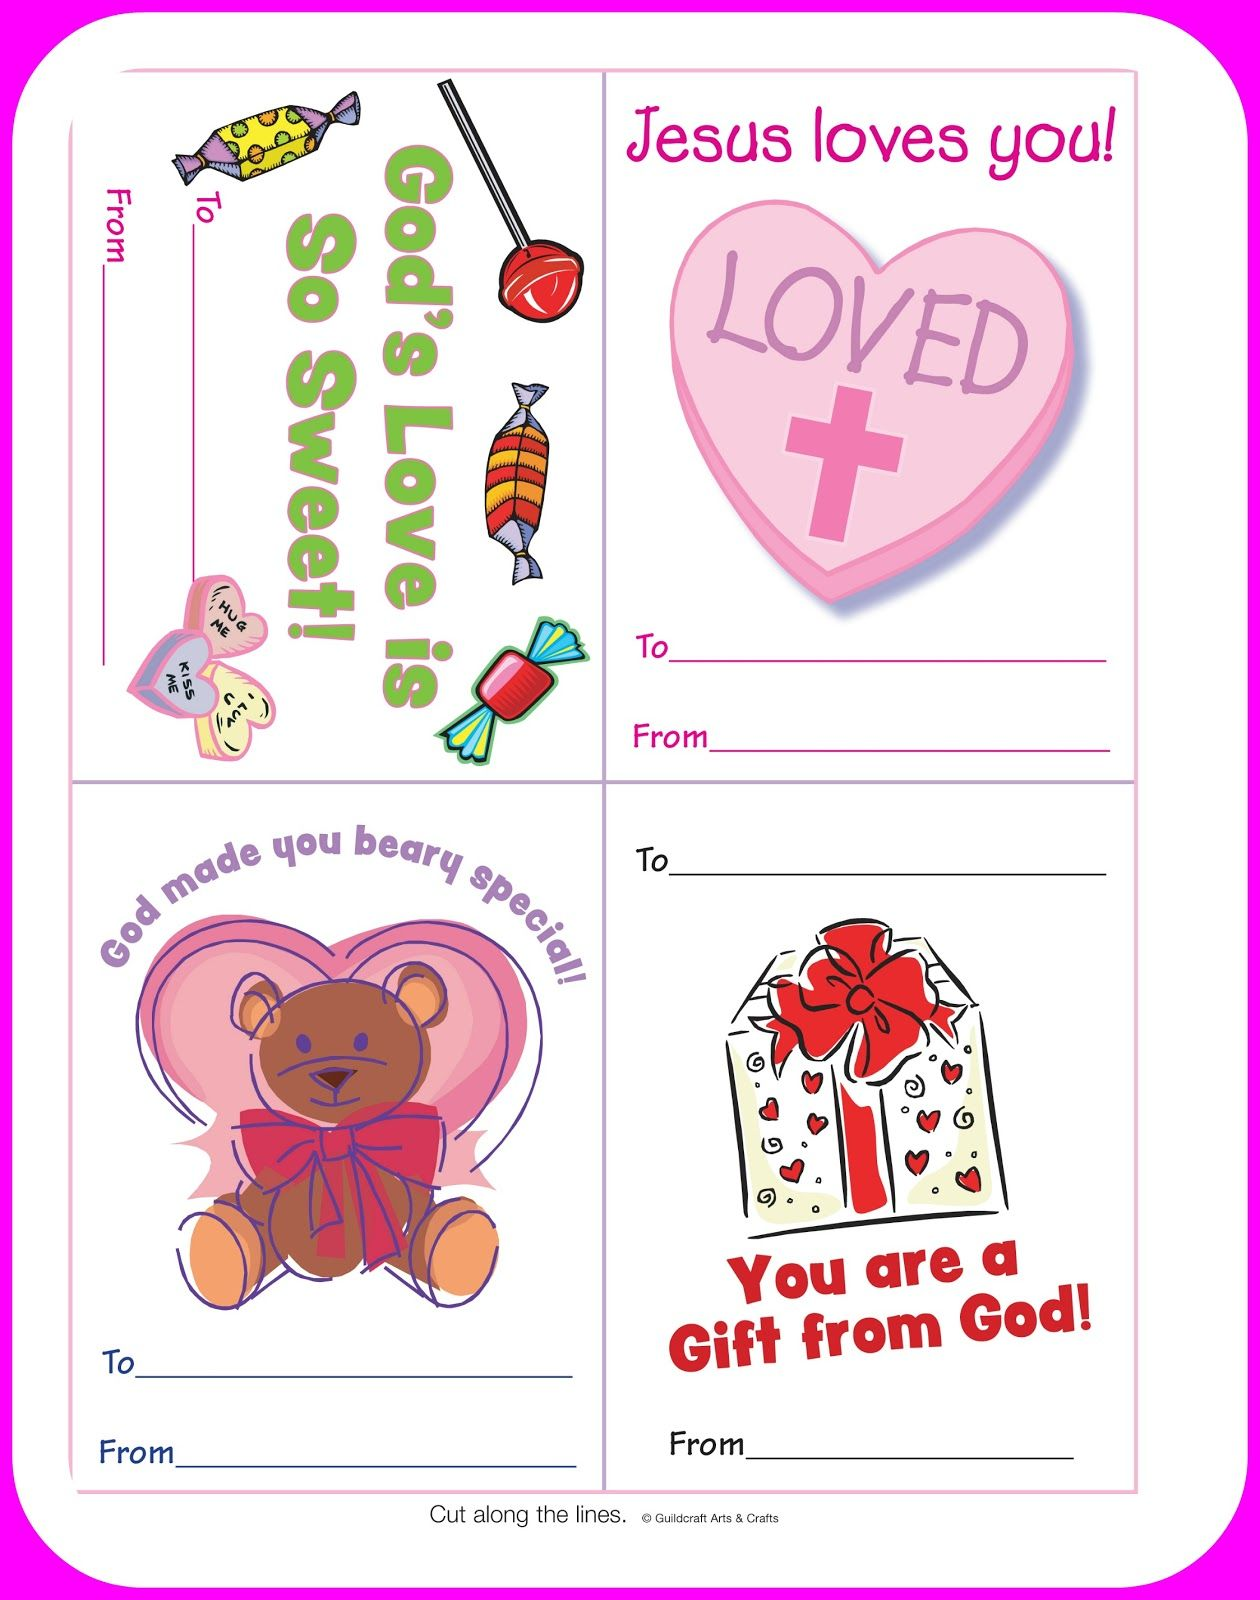 Free Christian Valentine's Printables for kids. Courtesy of Craft.